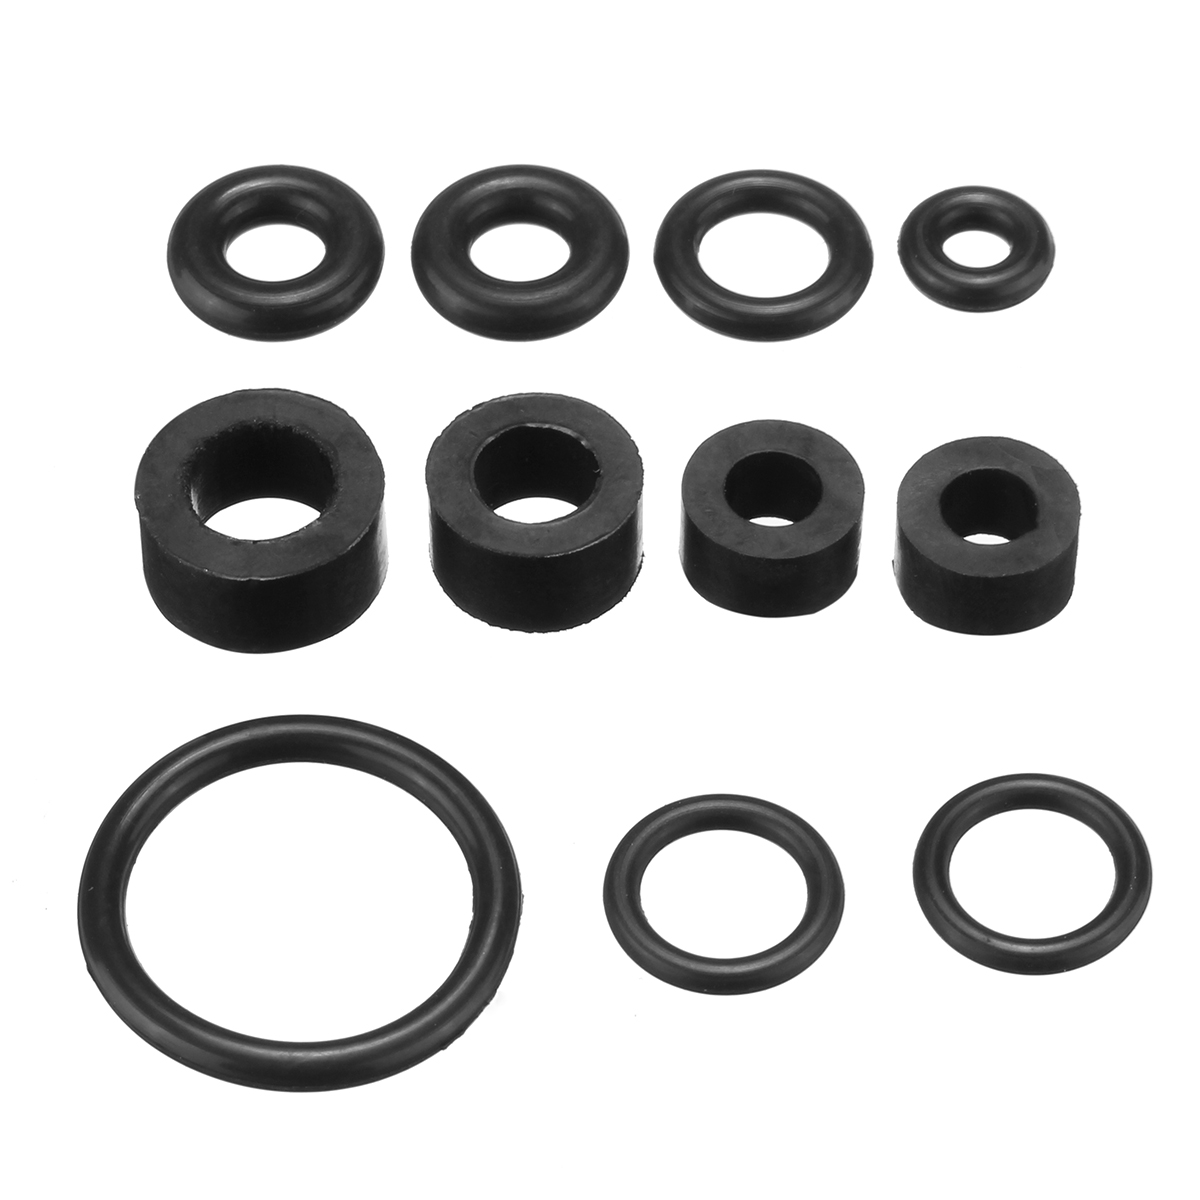 Buy Ford Powerstroke And Get Free Shipping On 1999 F 250 Fuel Filter Gasket